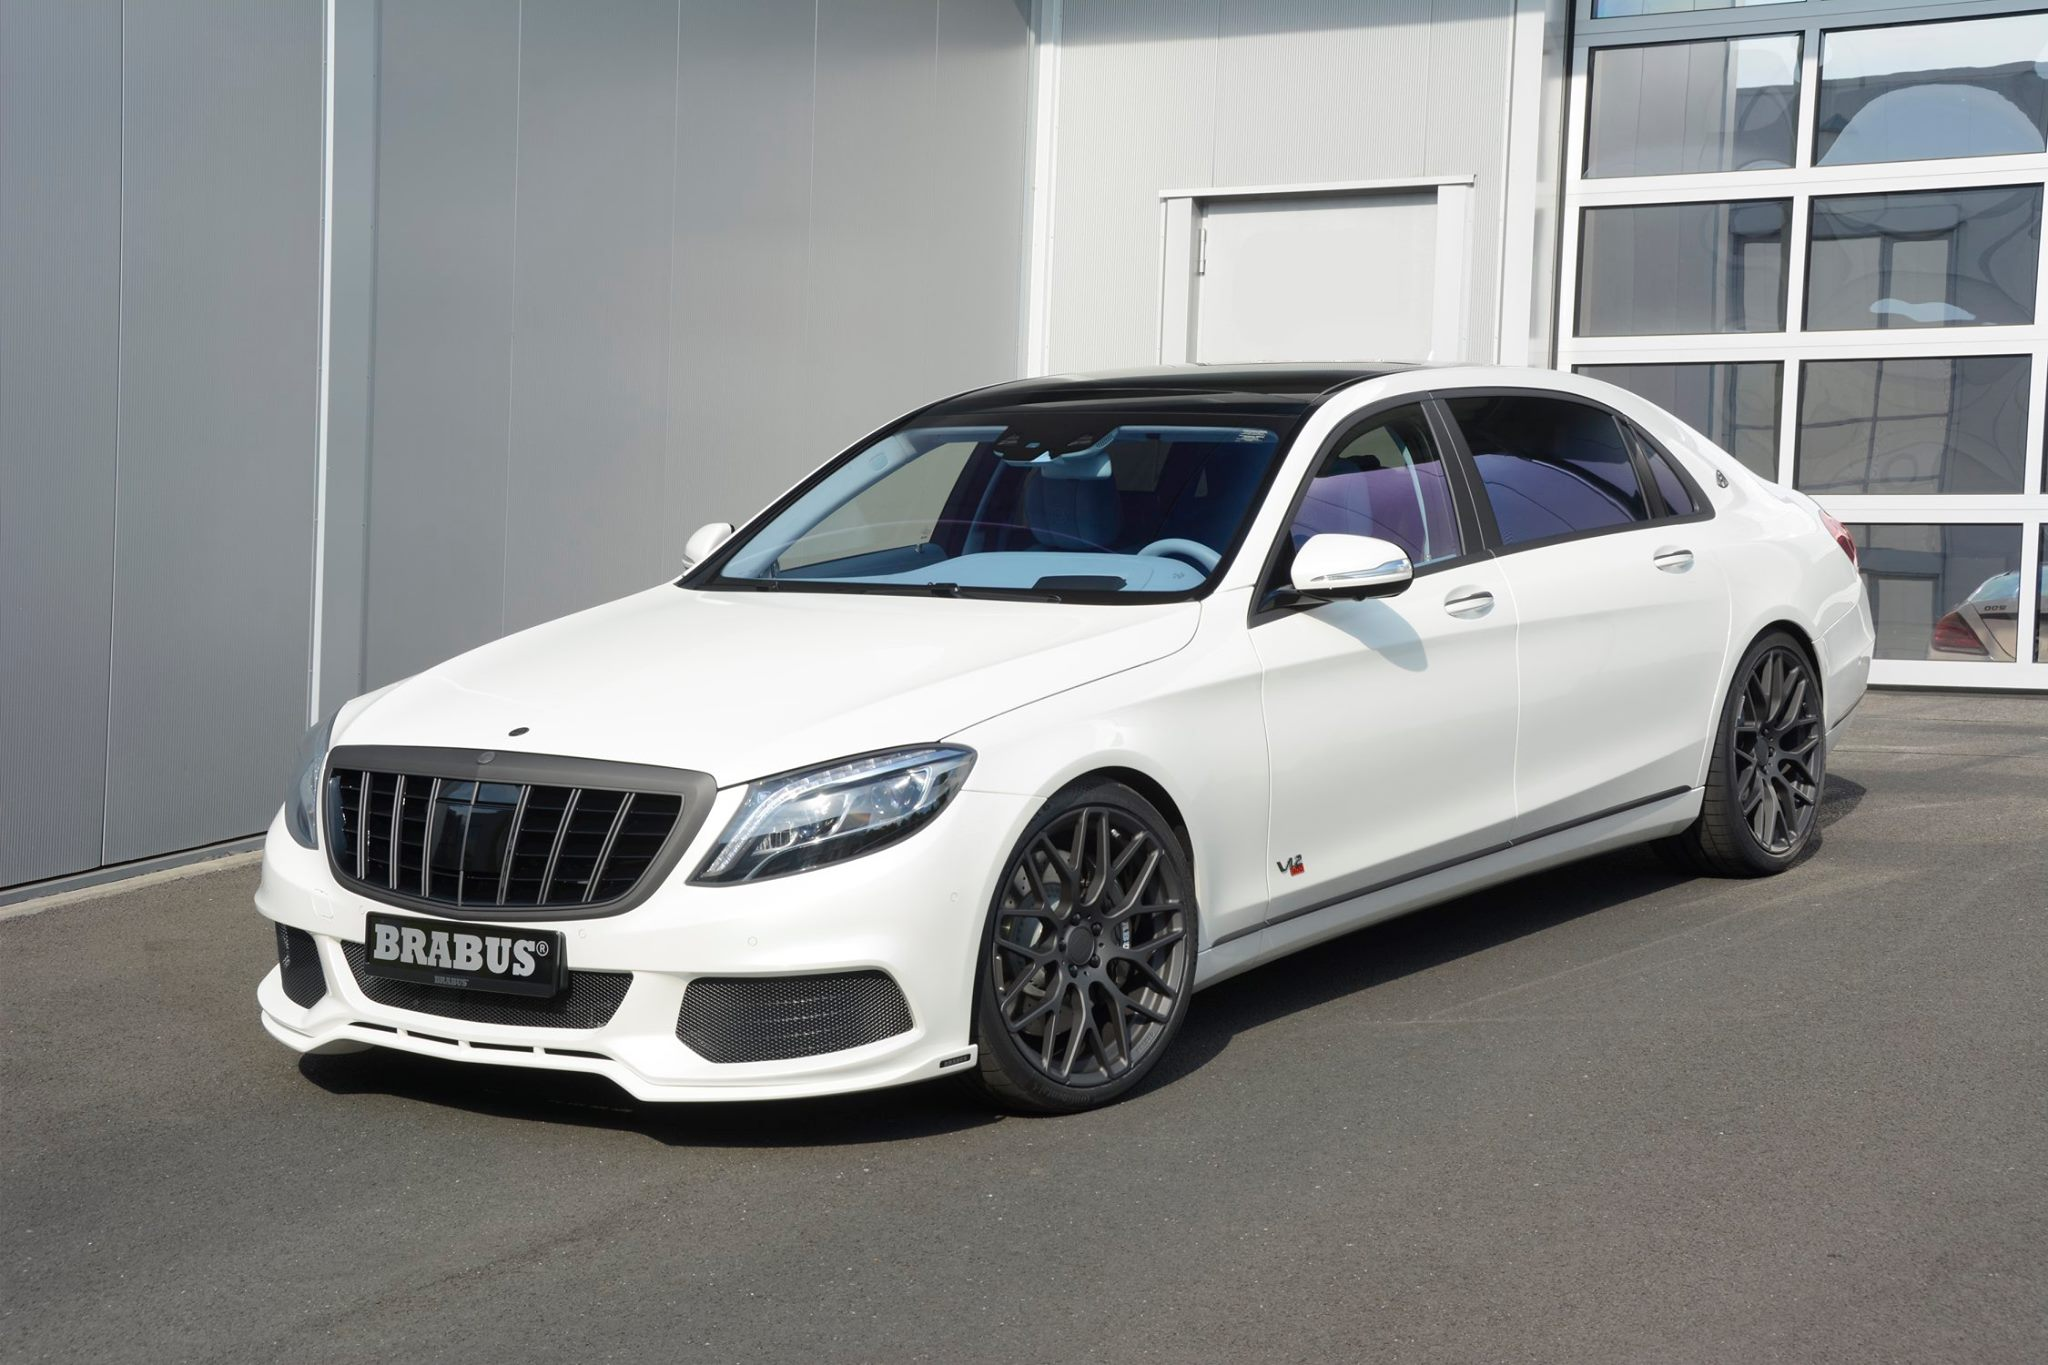 Maybach S600 Turns Into Brabus Rocket 900 With Blue